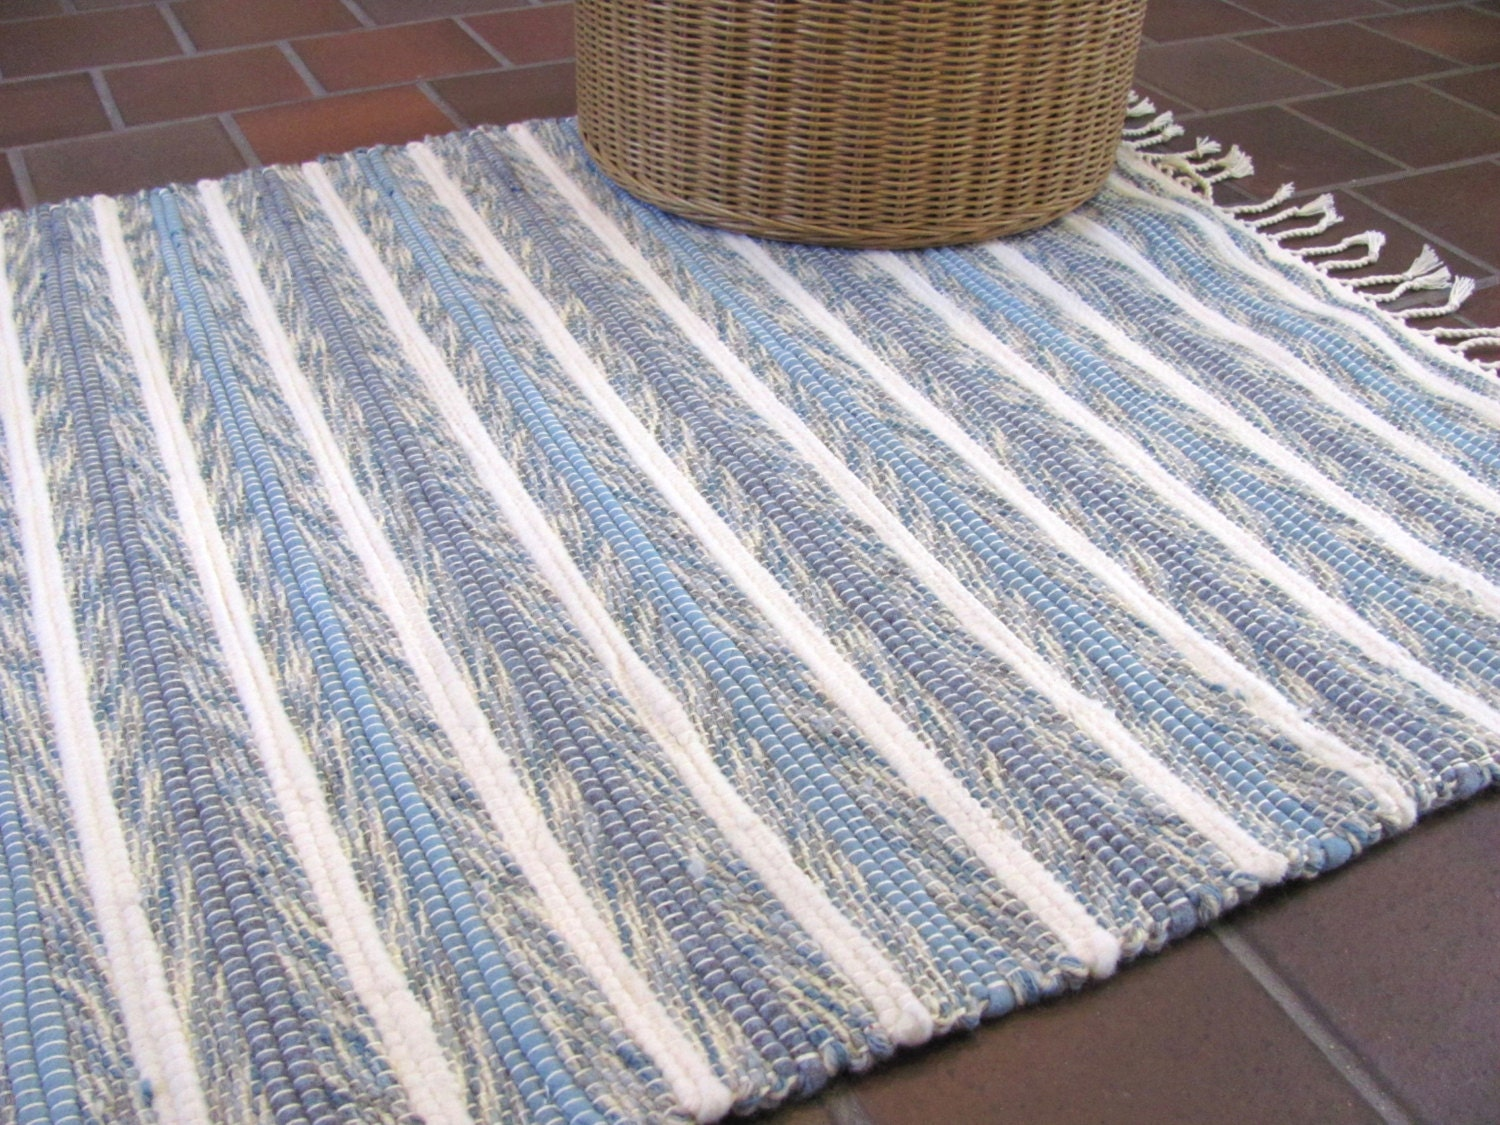 Rustic French Country Home Decor Rug Farmhouse Decor Coastal